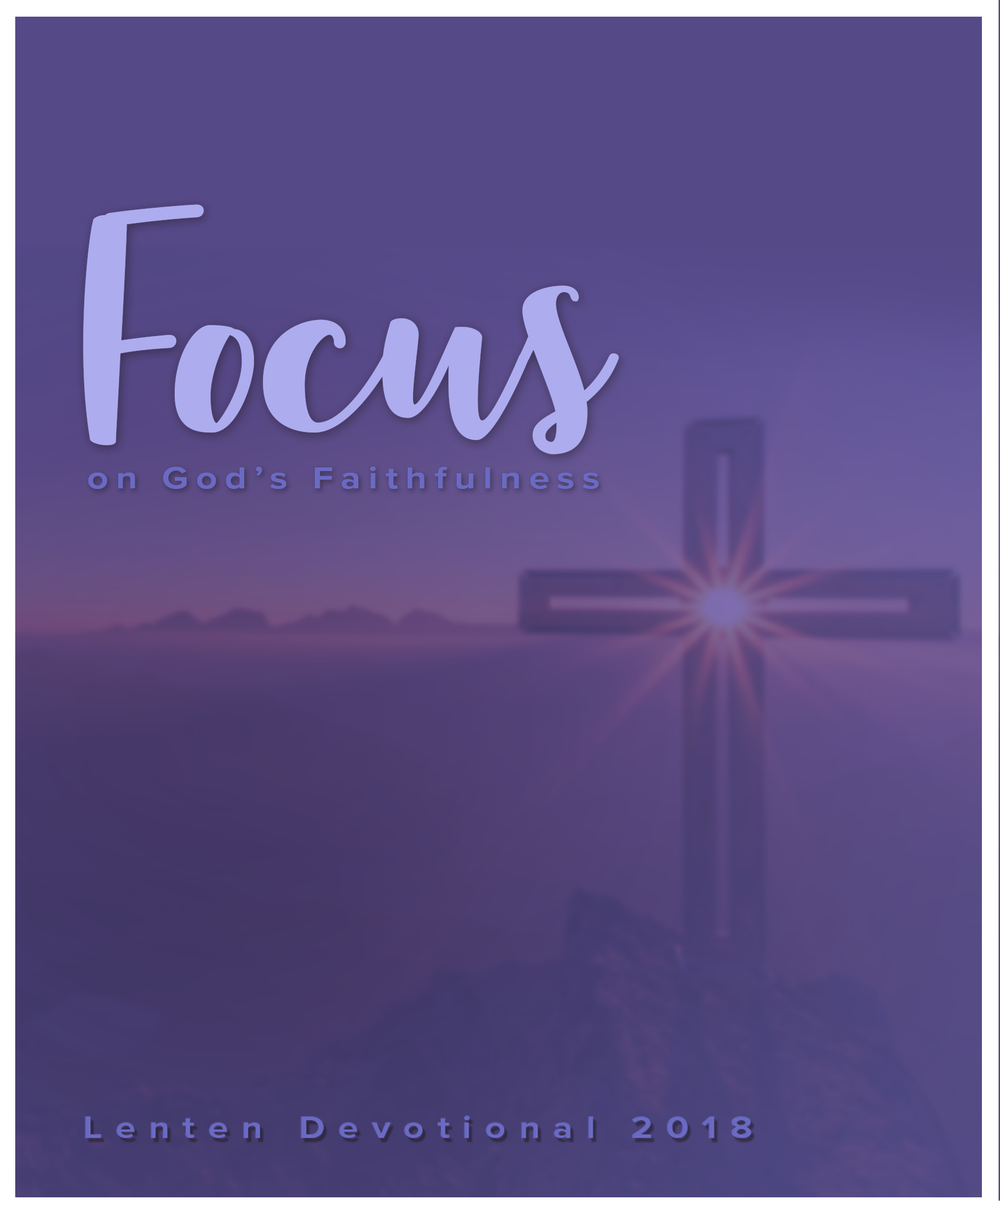 Lenten Devotional 2018 Cover 7x8.5.png